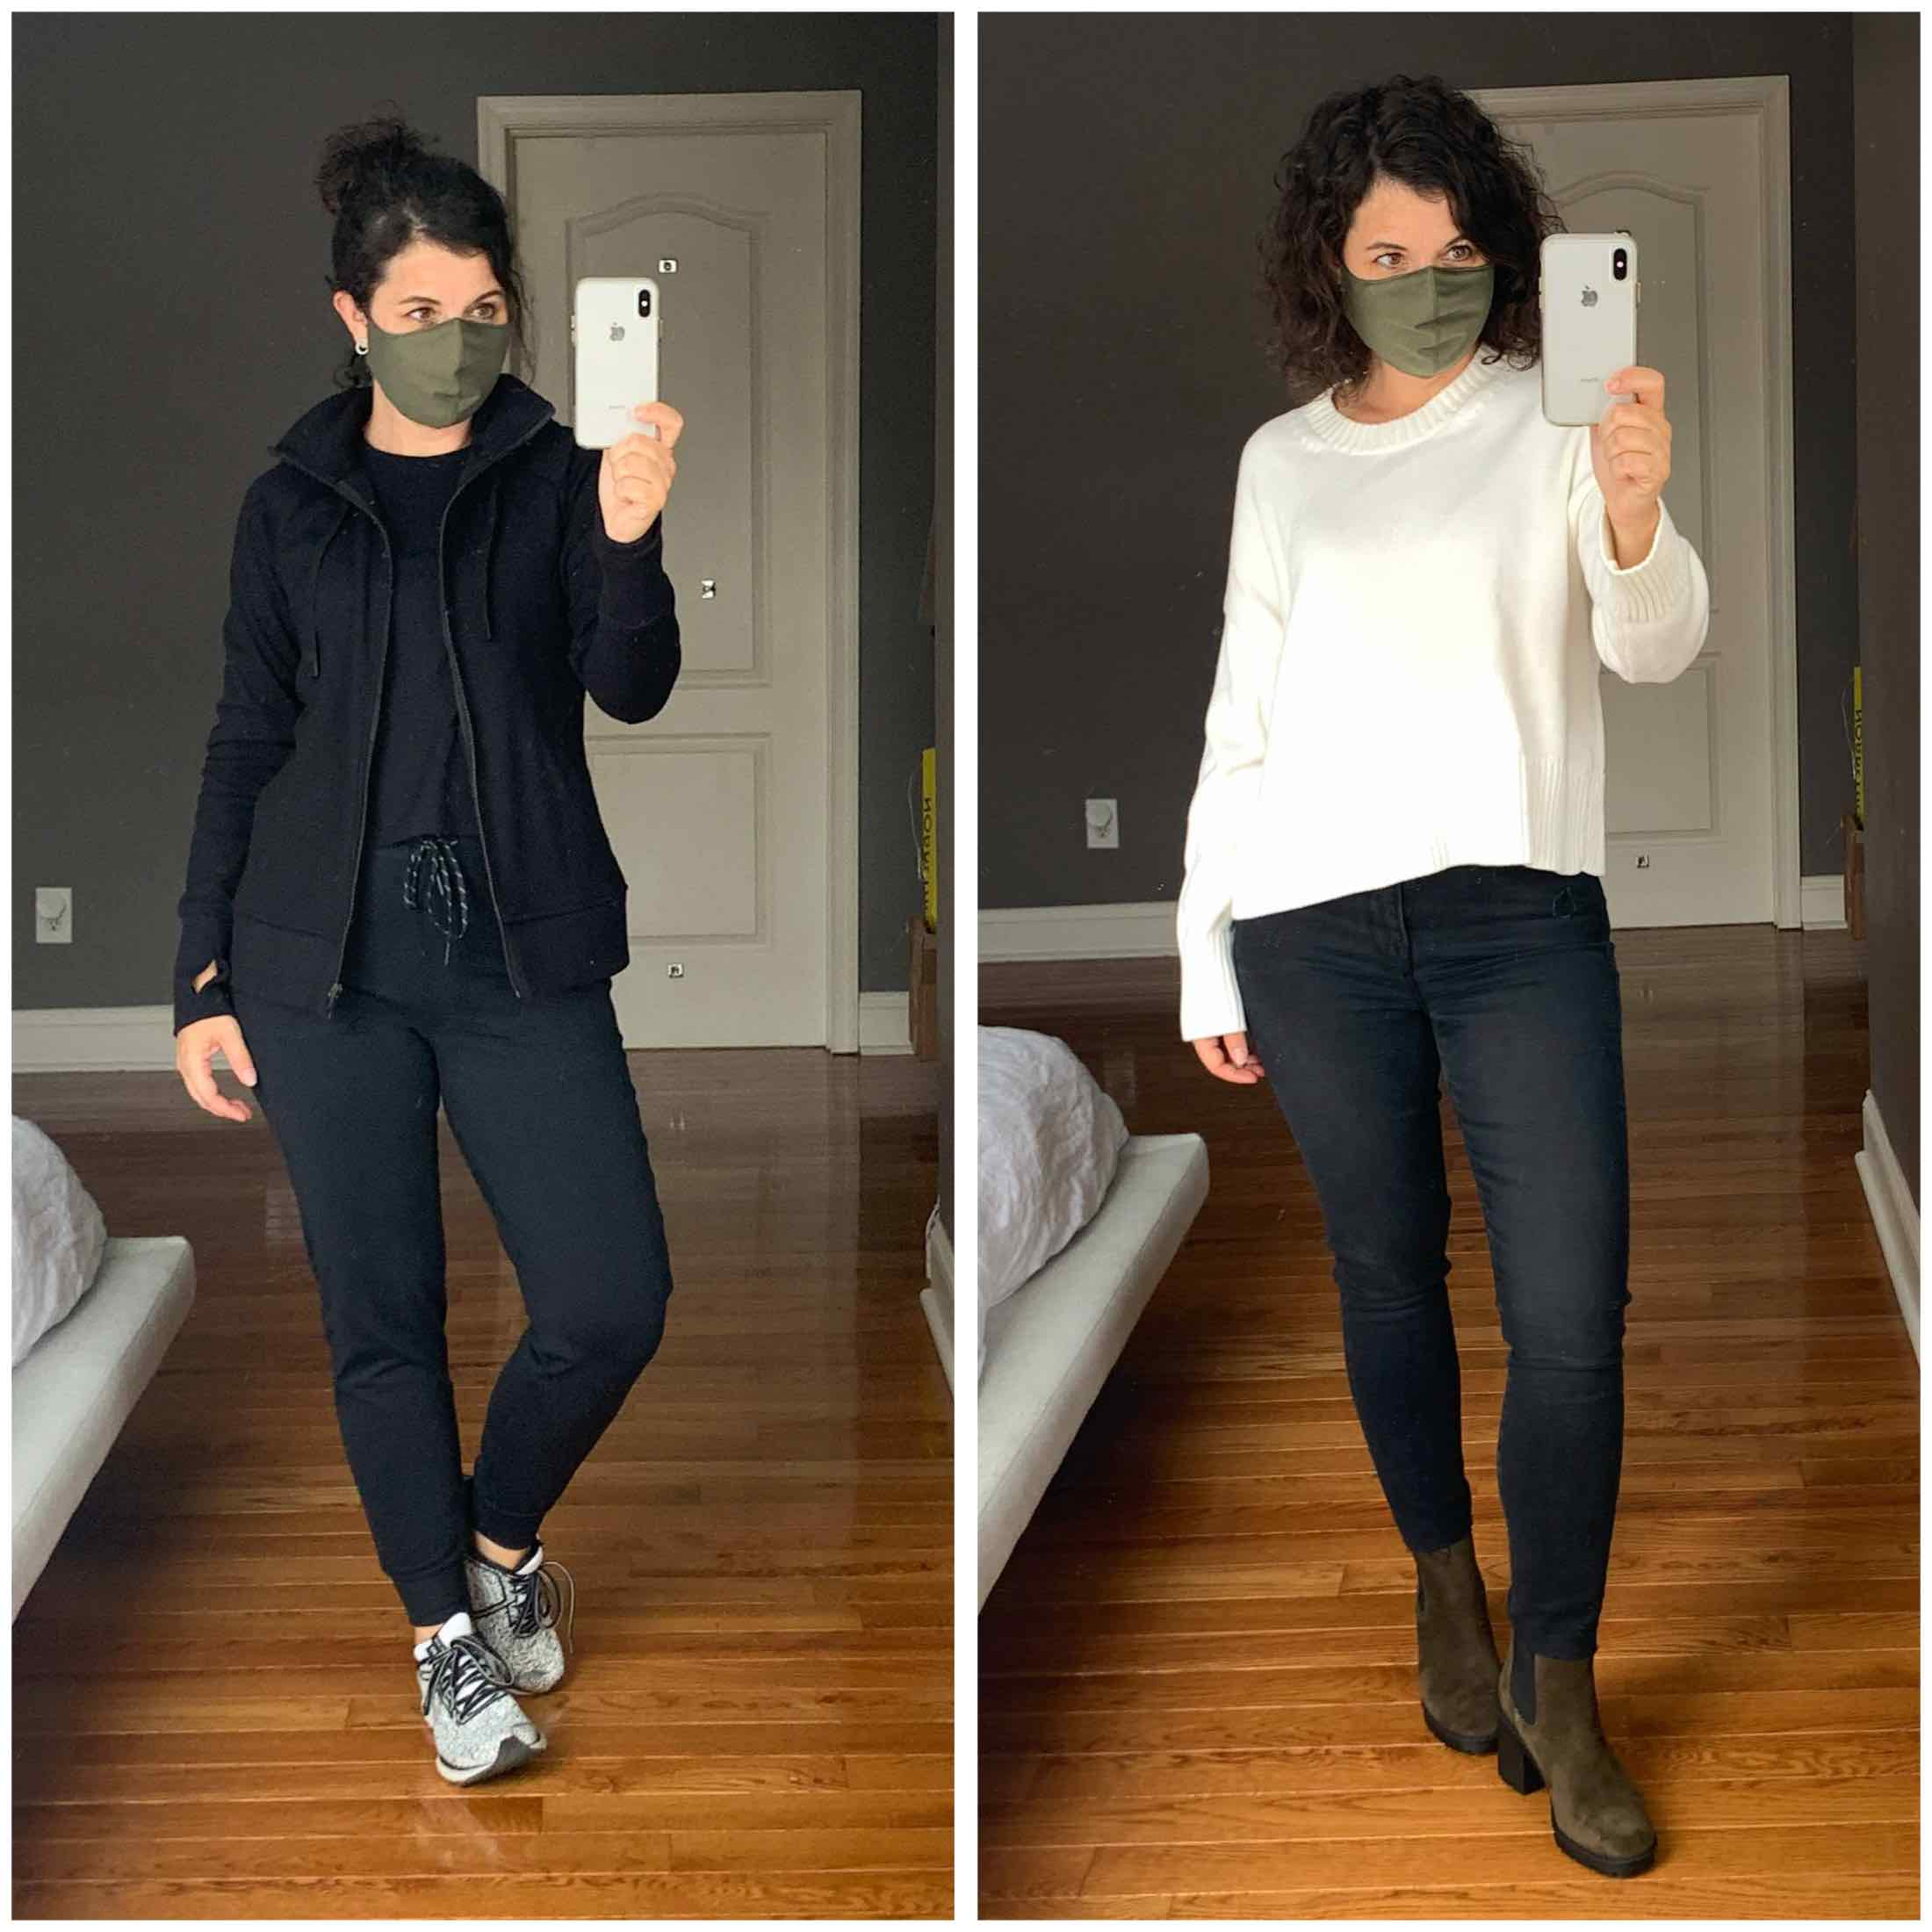 The best mask? We think: cute, comfortable & breathable. Athleta, Outdoor Research, Reformation...a review of 10 face coverings we tried.